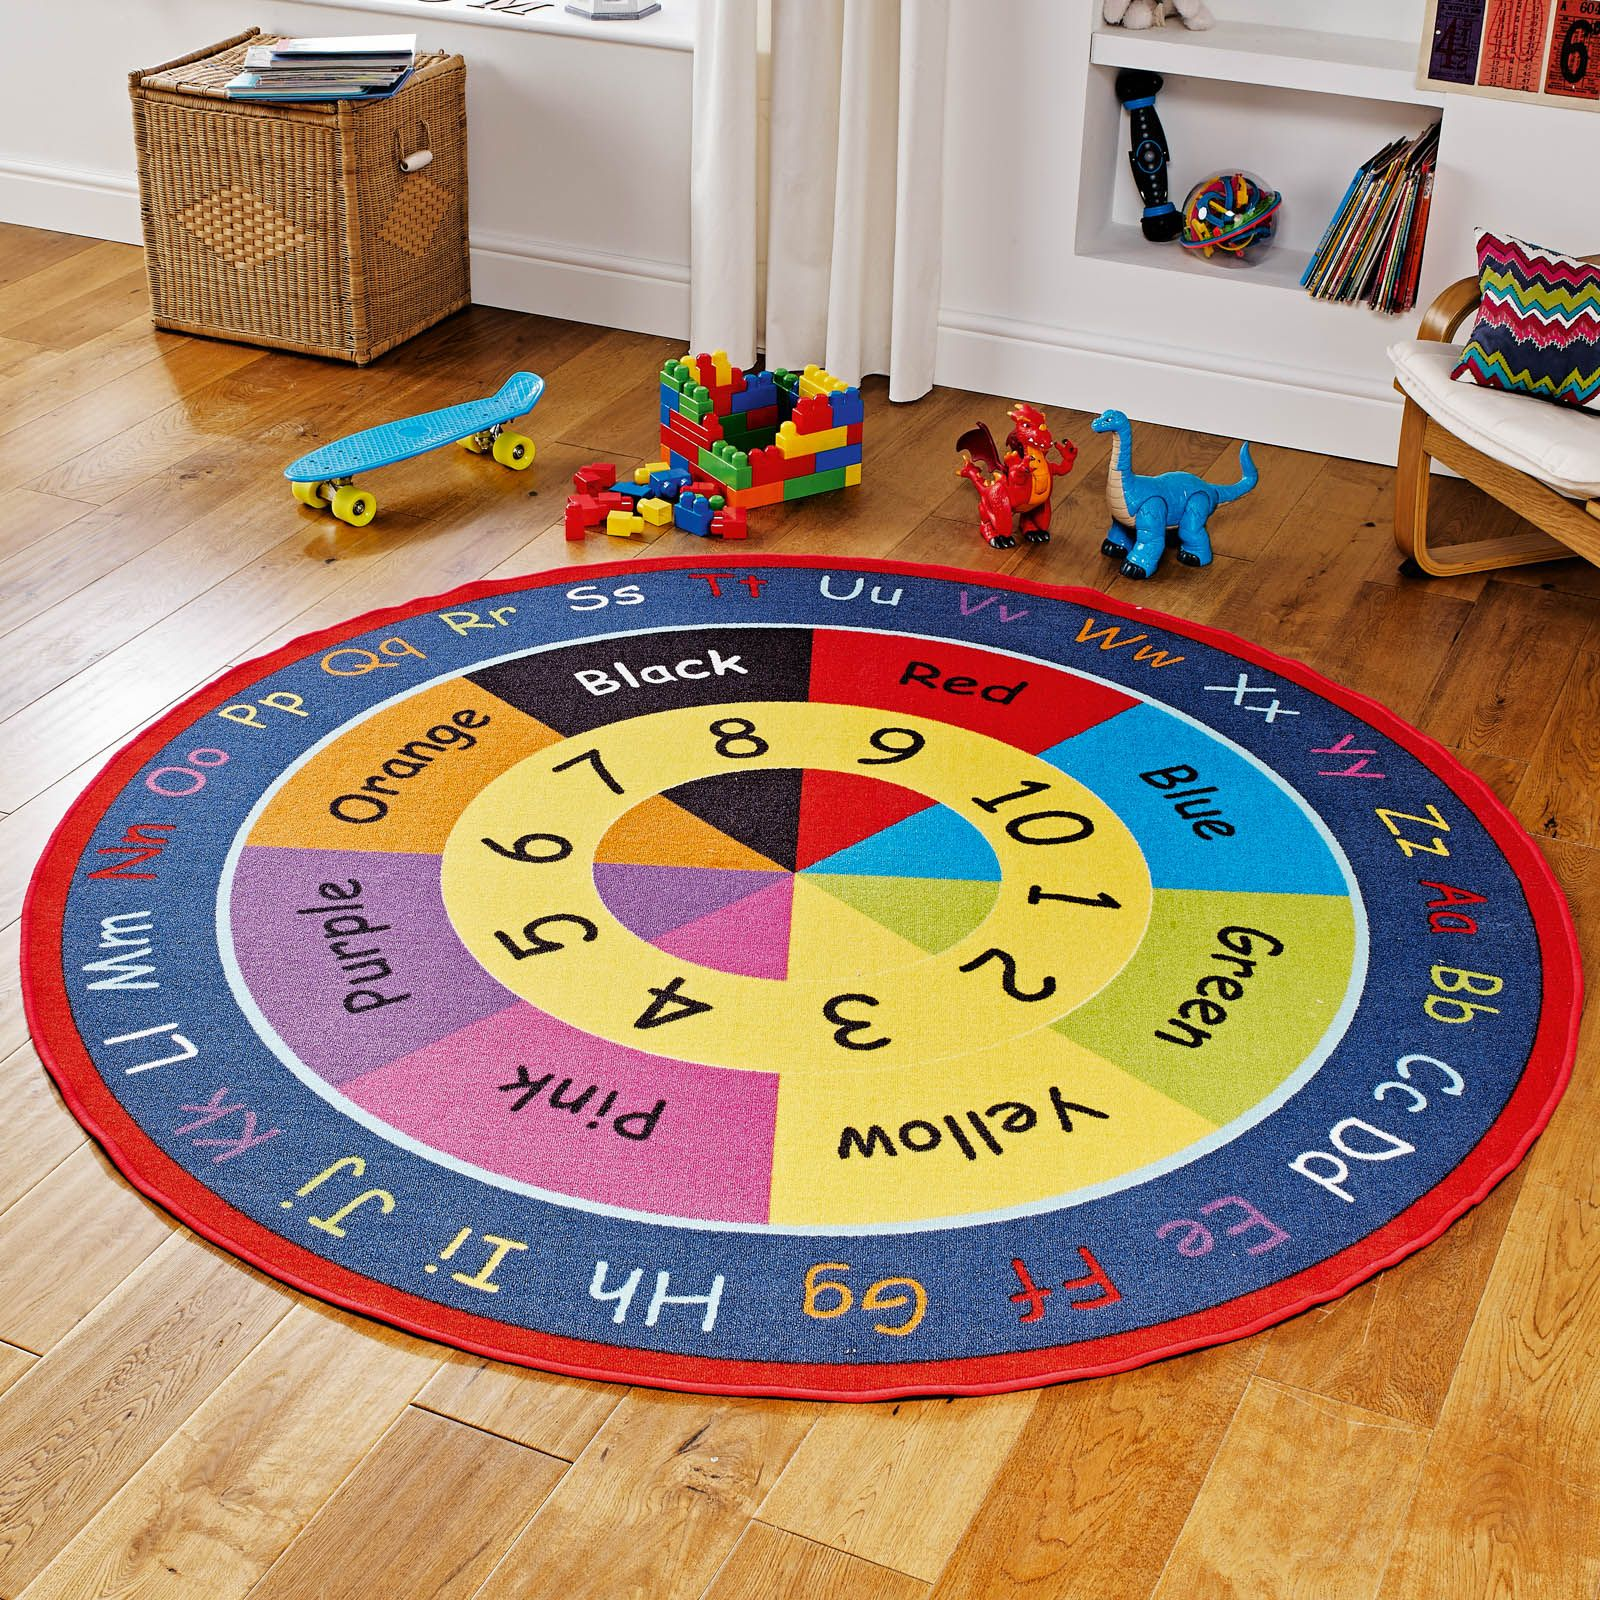 Our Educational Rugs Are Por With Education Authorities Schools Nurseries And Play Groups But